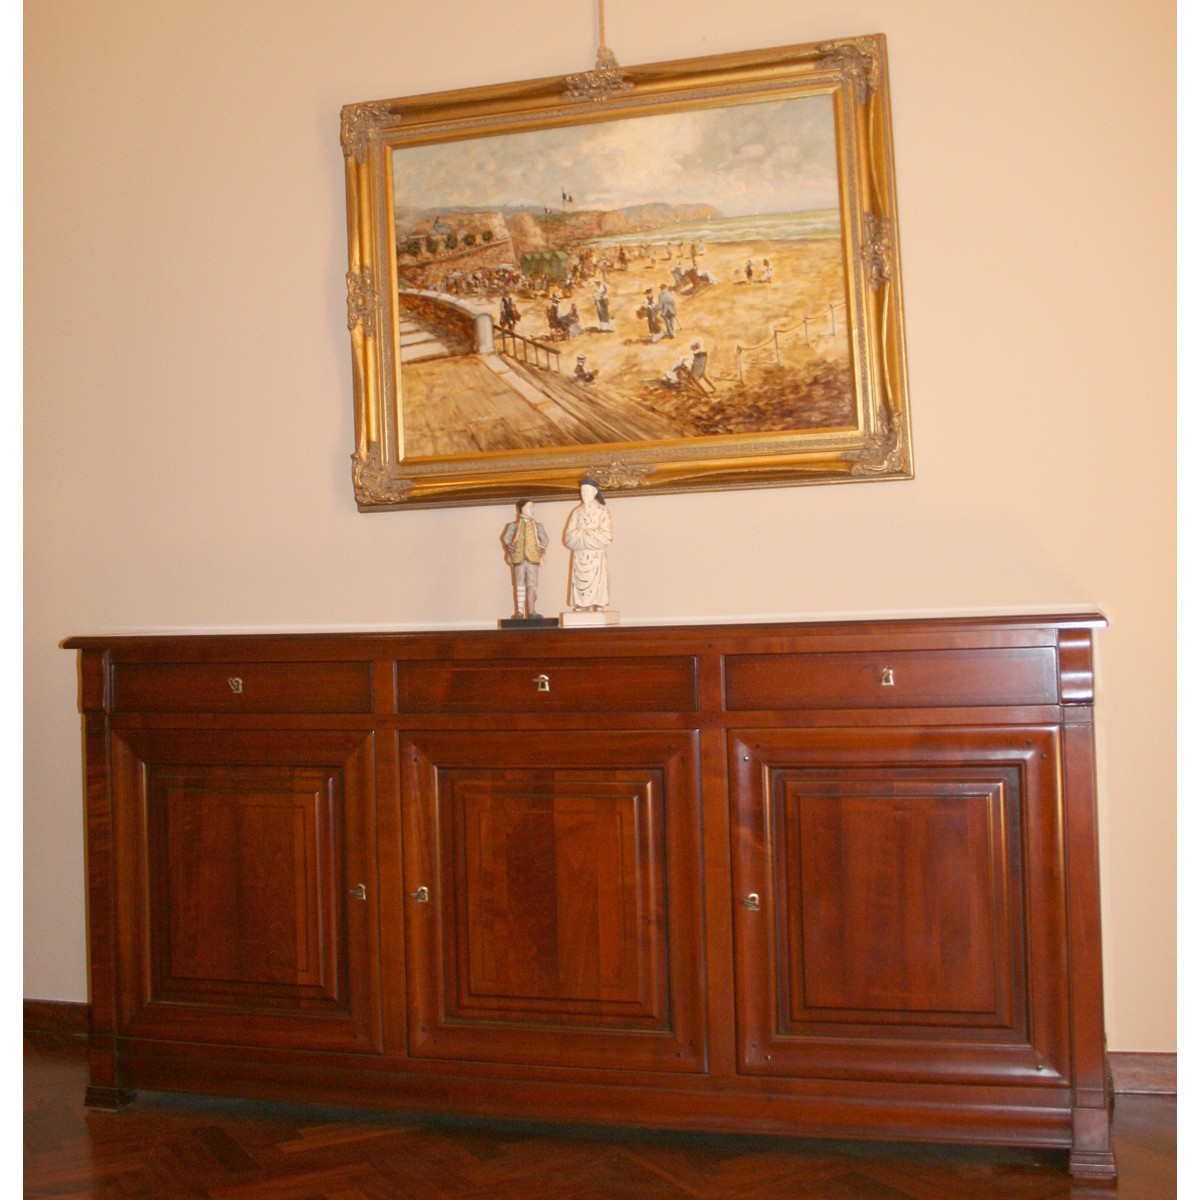 Grande arredo va 3 sideboard outlet for Sideboard 2 m breit